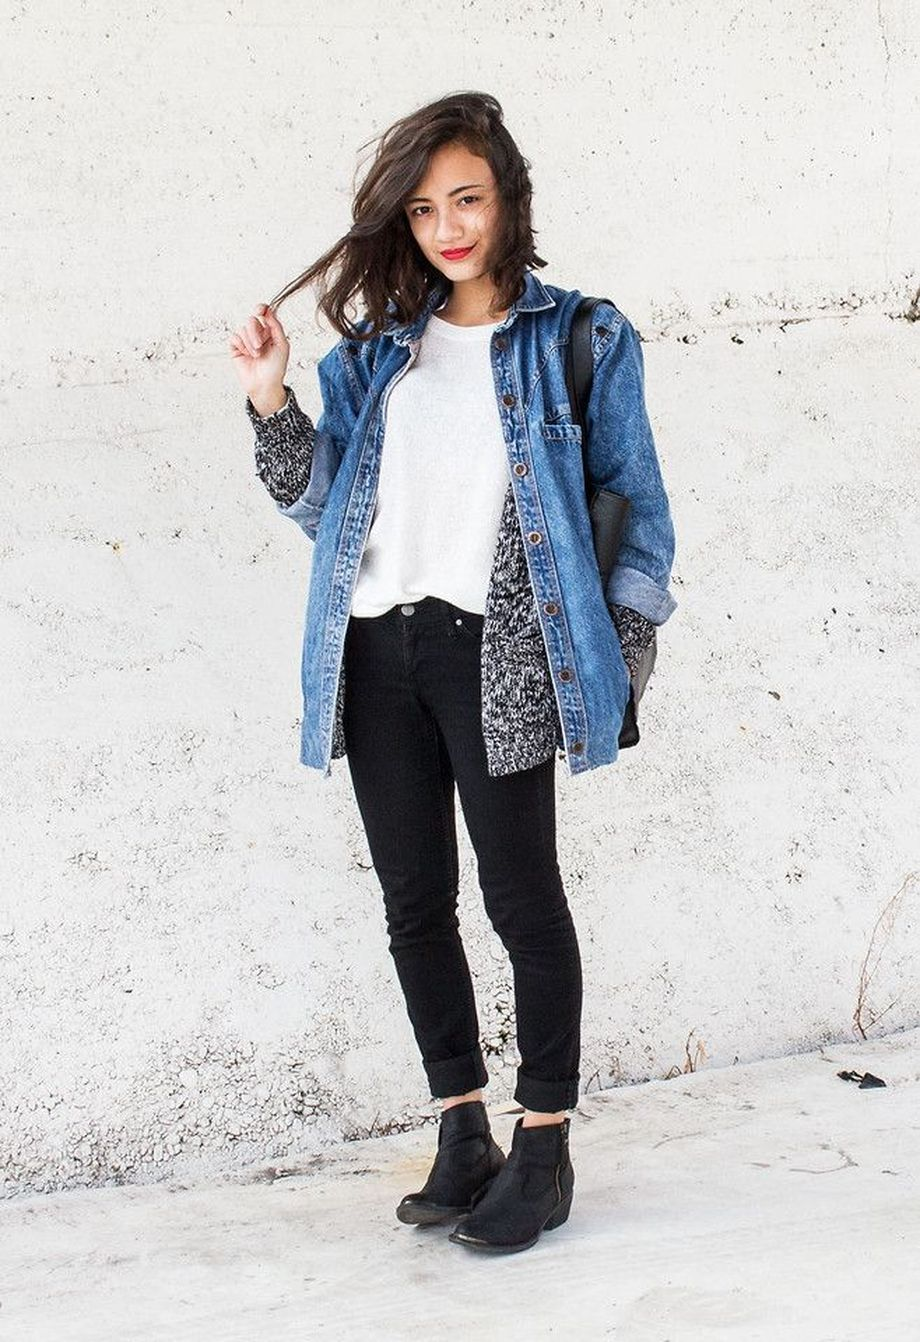 Denim Jacket Outfits Inspirations For Girl 25 Fashion Best